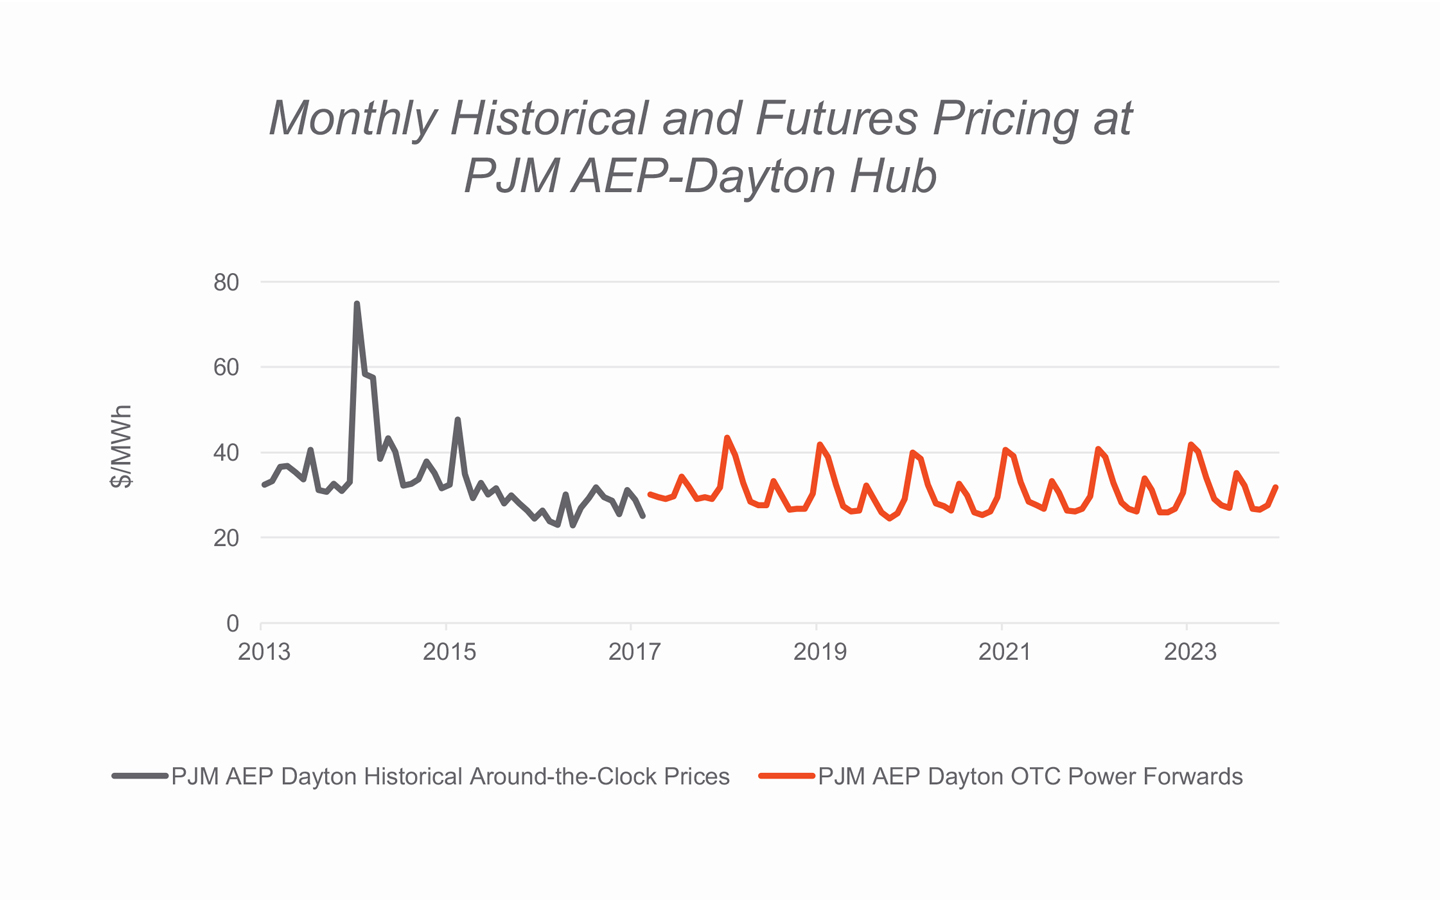 Monthly Historical and Futures Pricing at PJM AEP-Dayton Hub